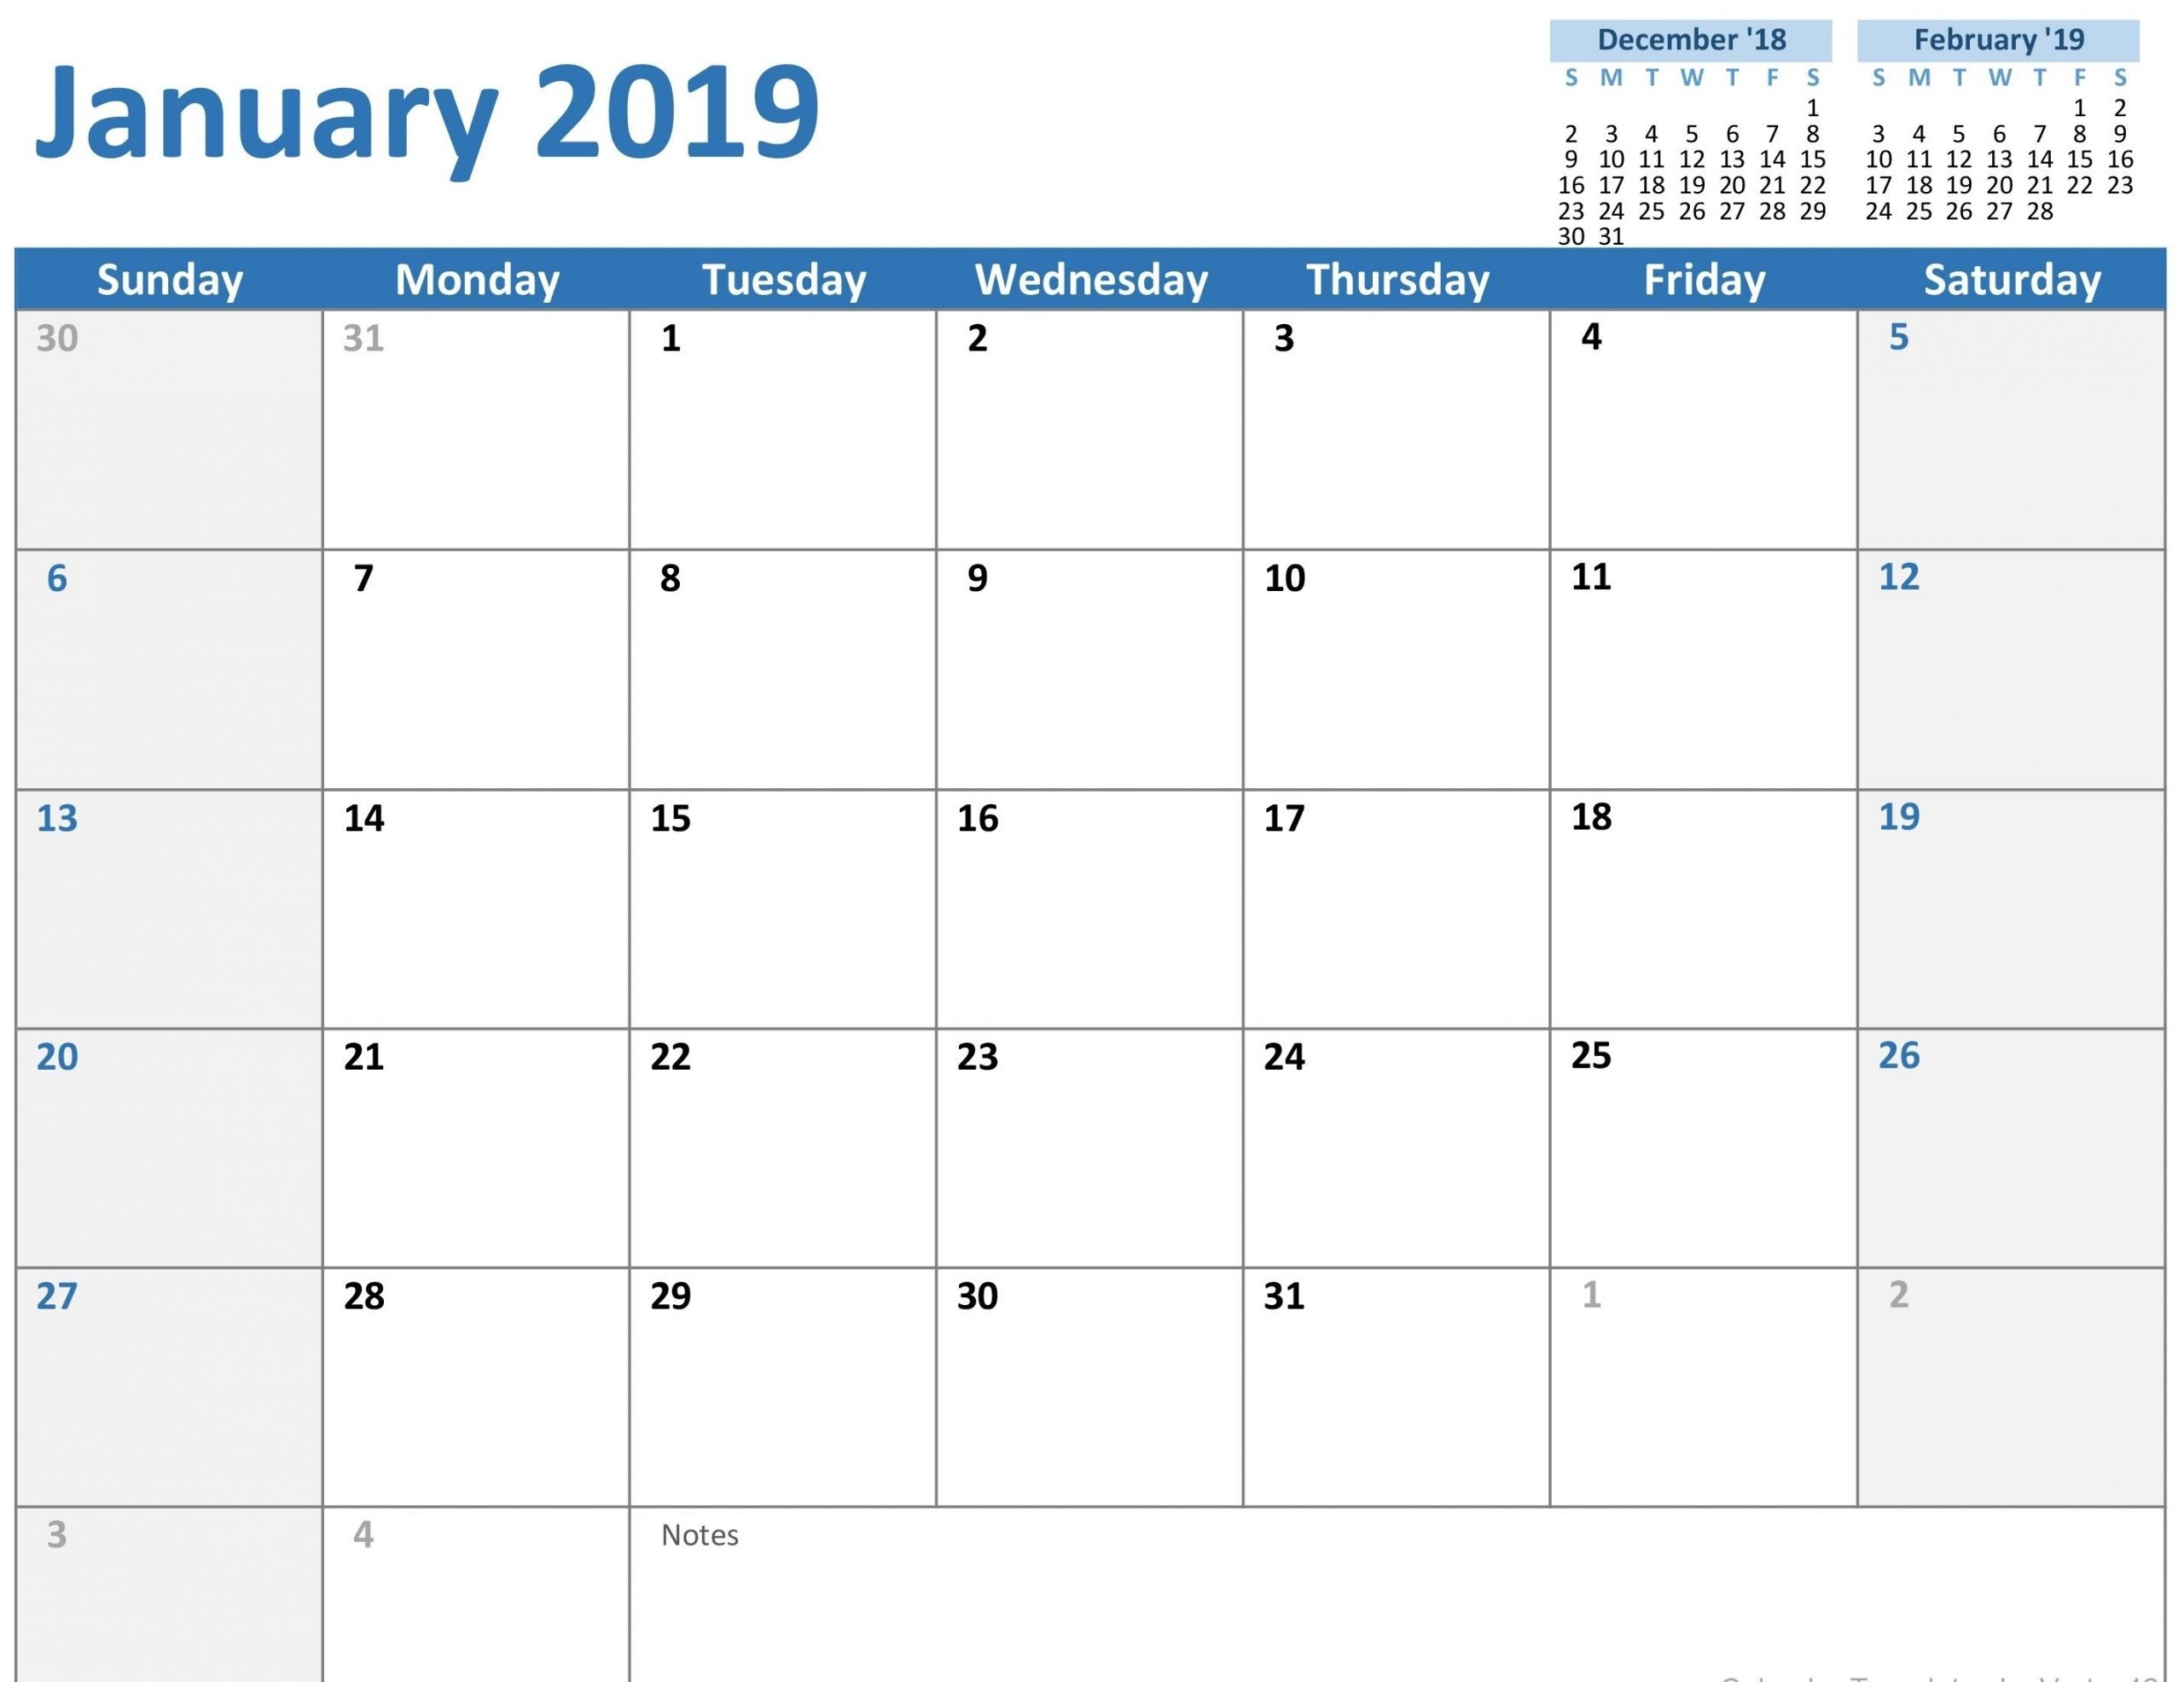 Take Blank Calendar Mon Through Fri With No Dates Or Month Mon - Friday Monthly Calendar Template